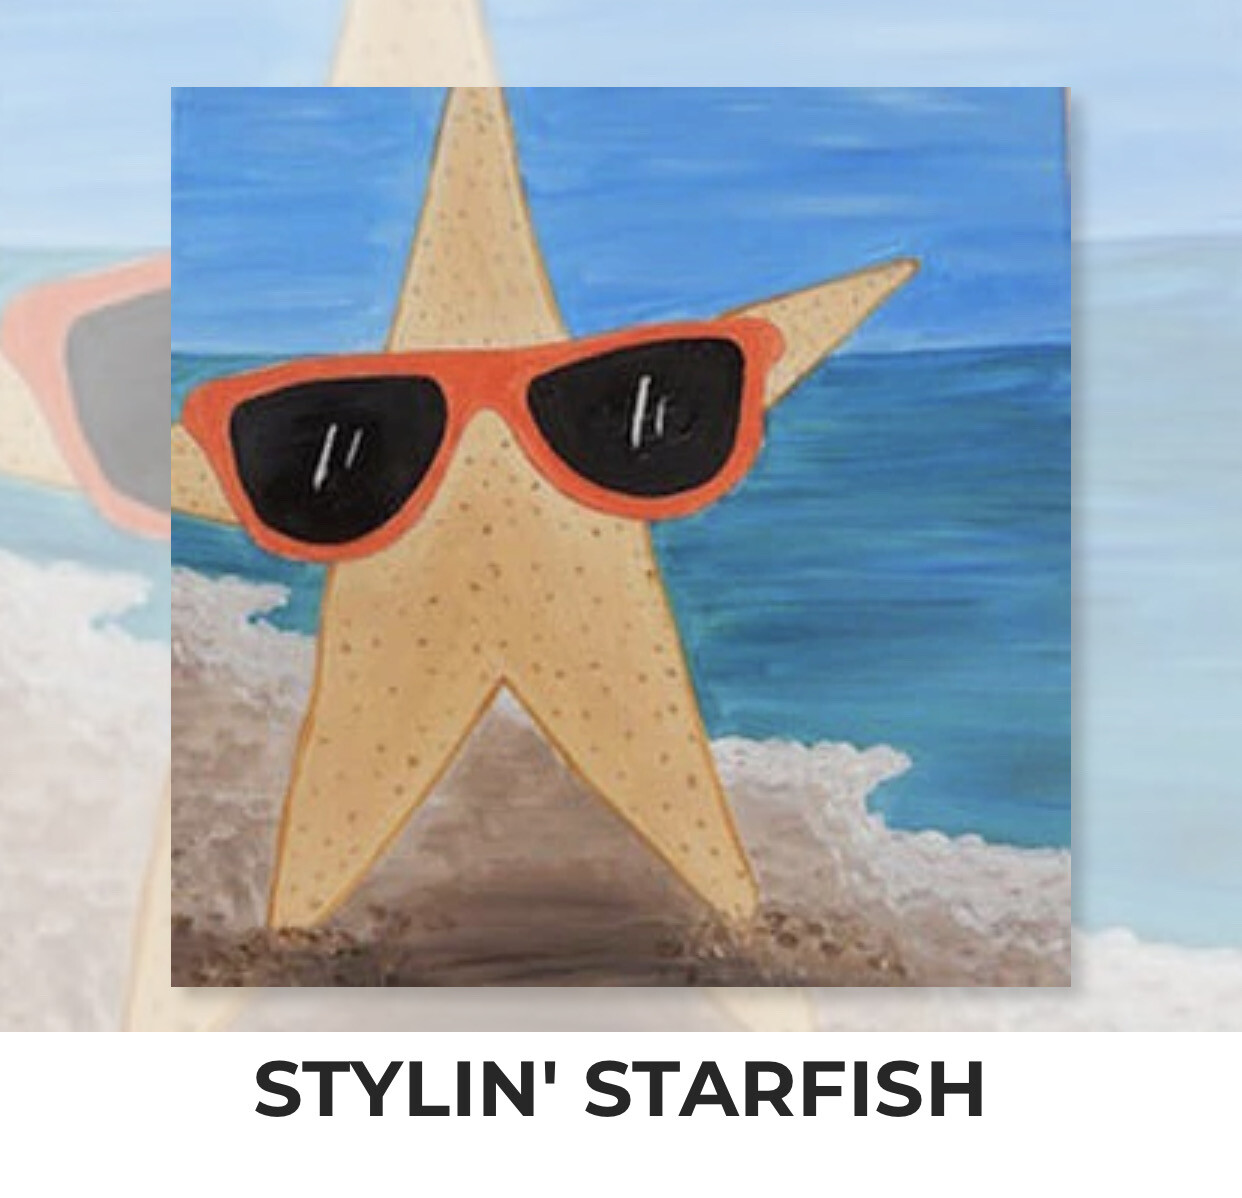 Stylin' Starfish KIDS Acrylic Paint On Canvas DIY Art Kit